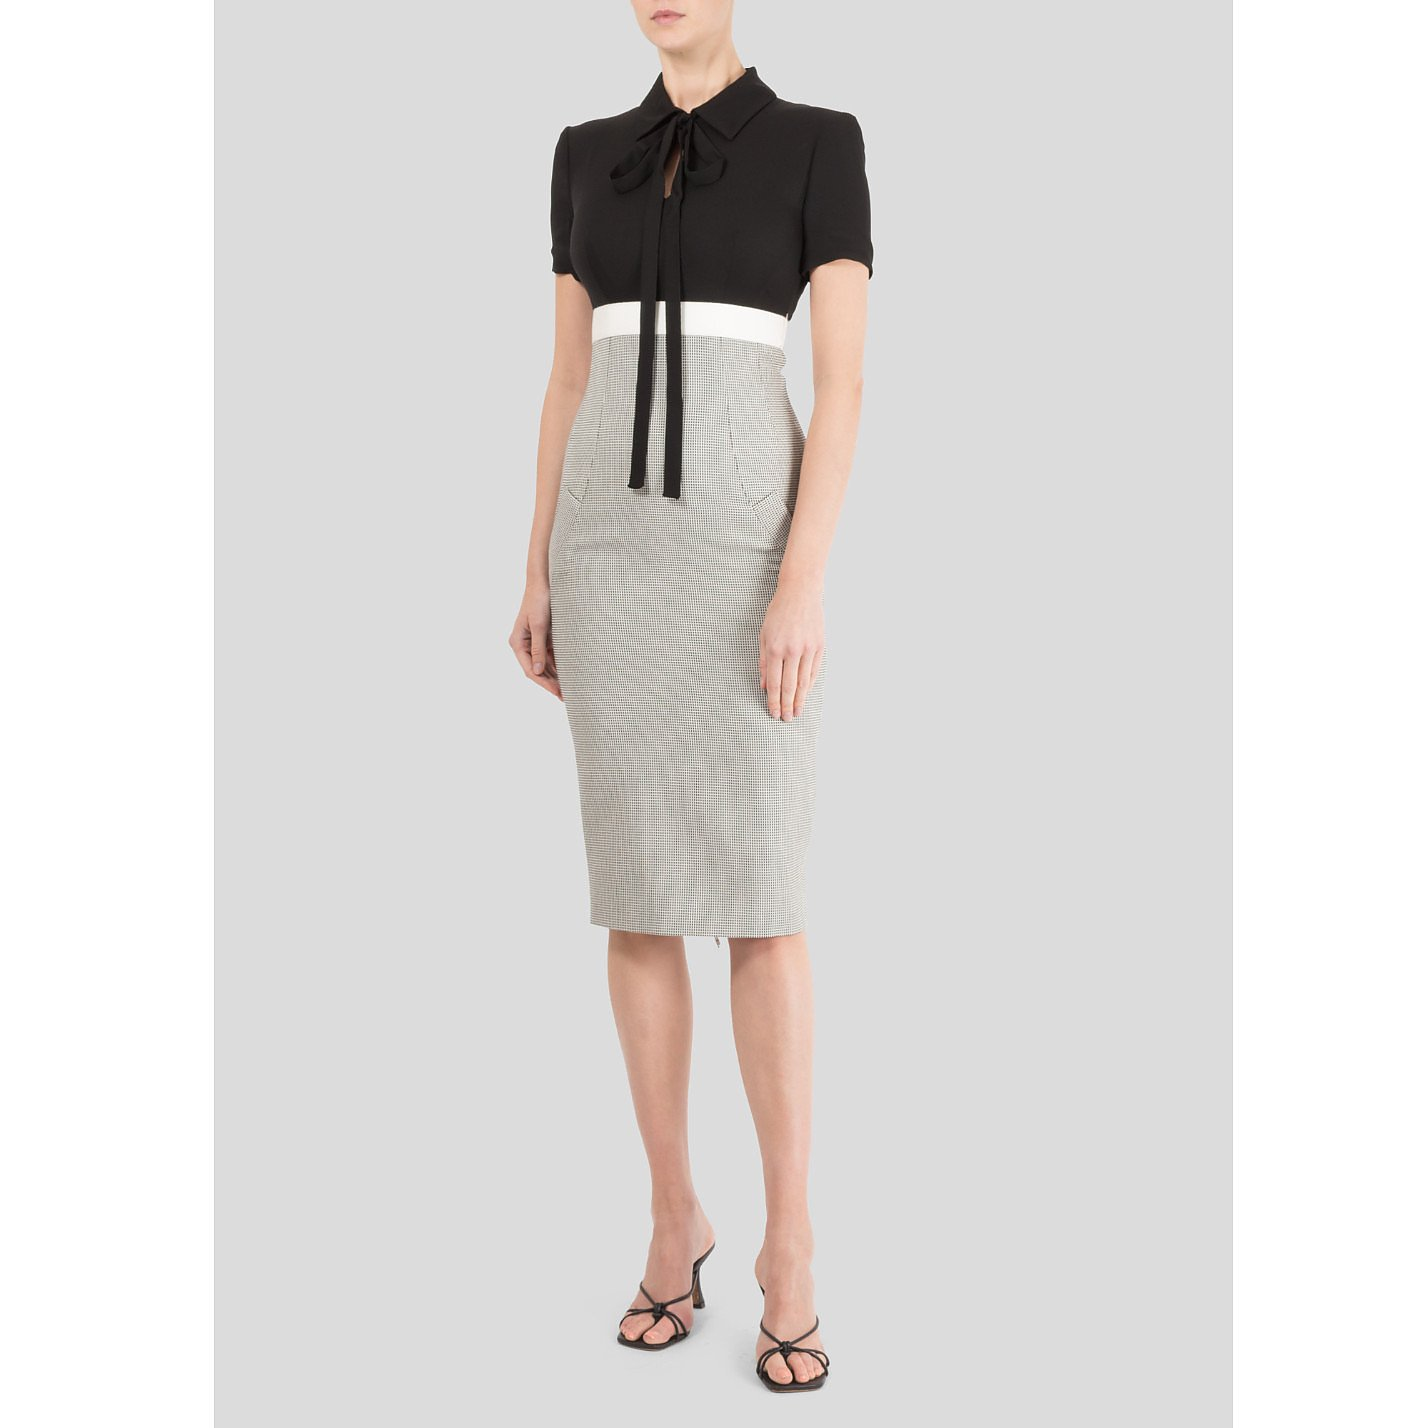 Victoria Beckham Fitted Dress with Shirt Top